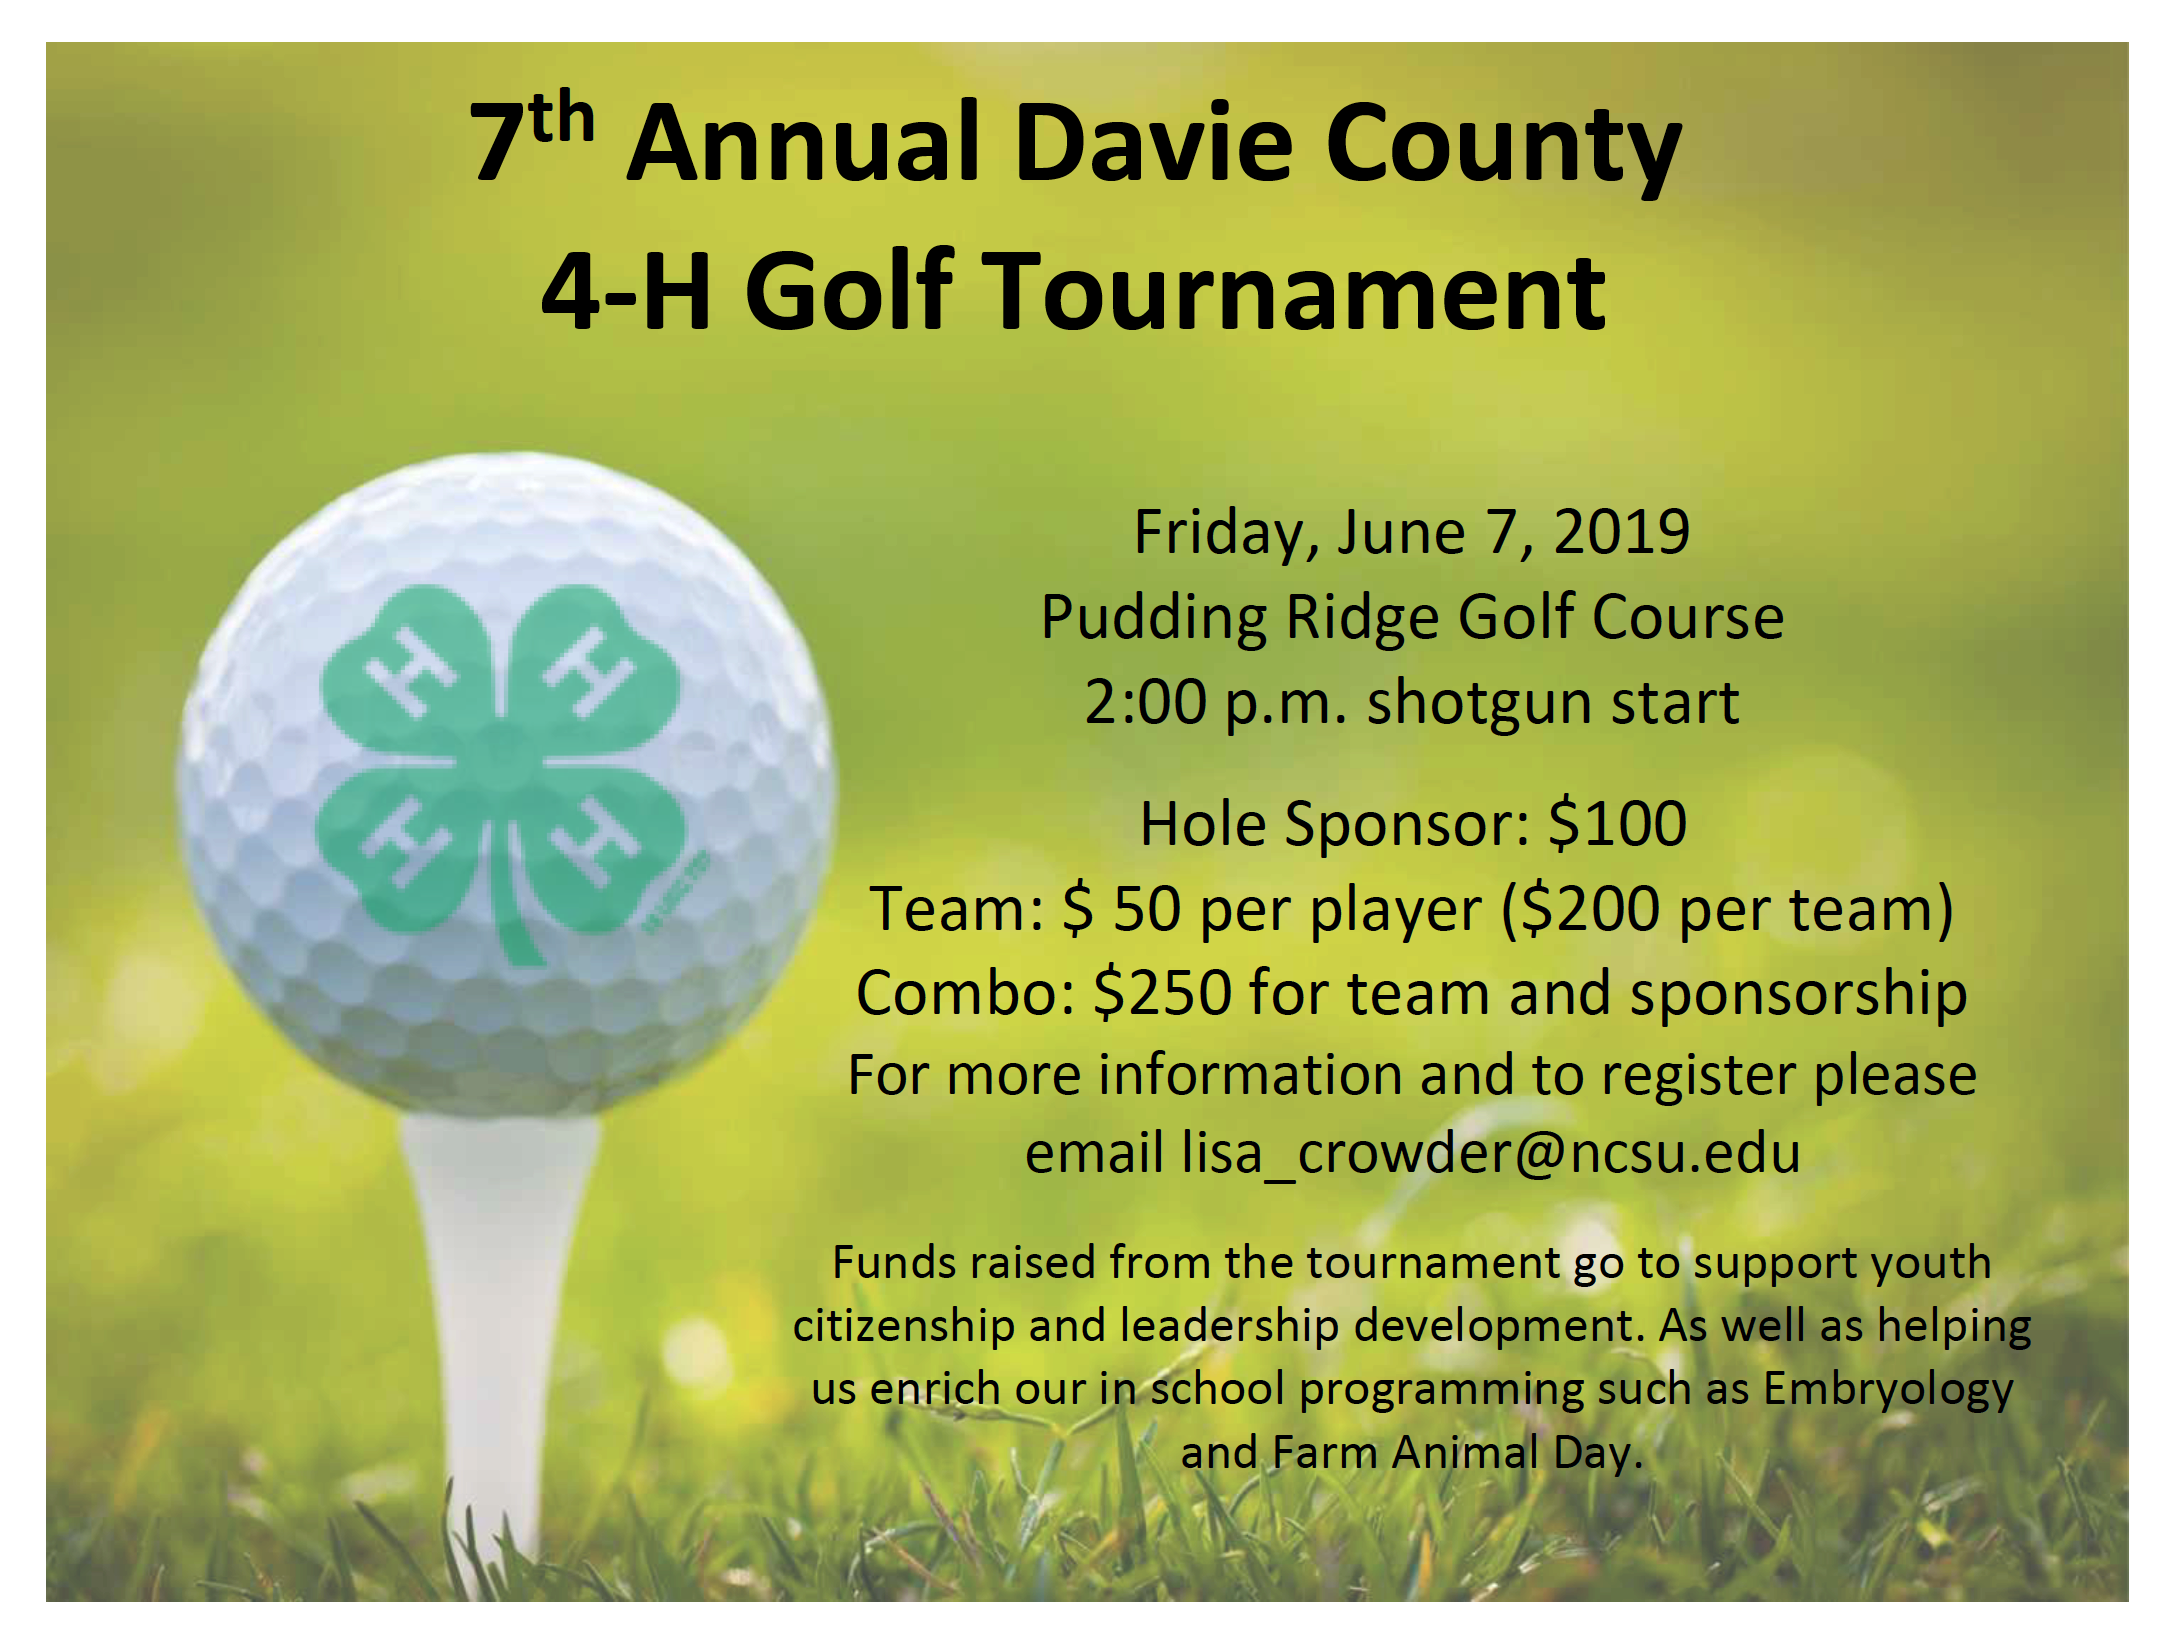 A white golf ball on a white tee stuck in the grass. The image is light so that the text will stand out. Text is as follows: Seventh Annual Davie County 4-H Golf Tournament. Friday June 7 at 2 p.m. Pudding Ridge Golf Course. Hole Sponsor: $100.00 Team: $50 per player or $200 per team. Combo: $250 for hole and team. Please Email lisa_crowder@ncsu.edu for more information or to register.